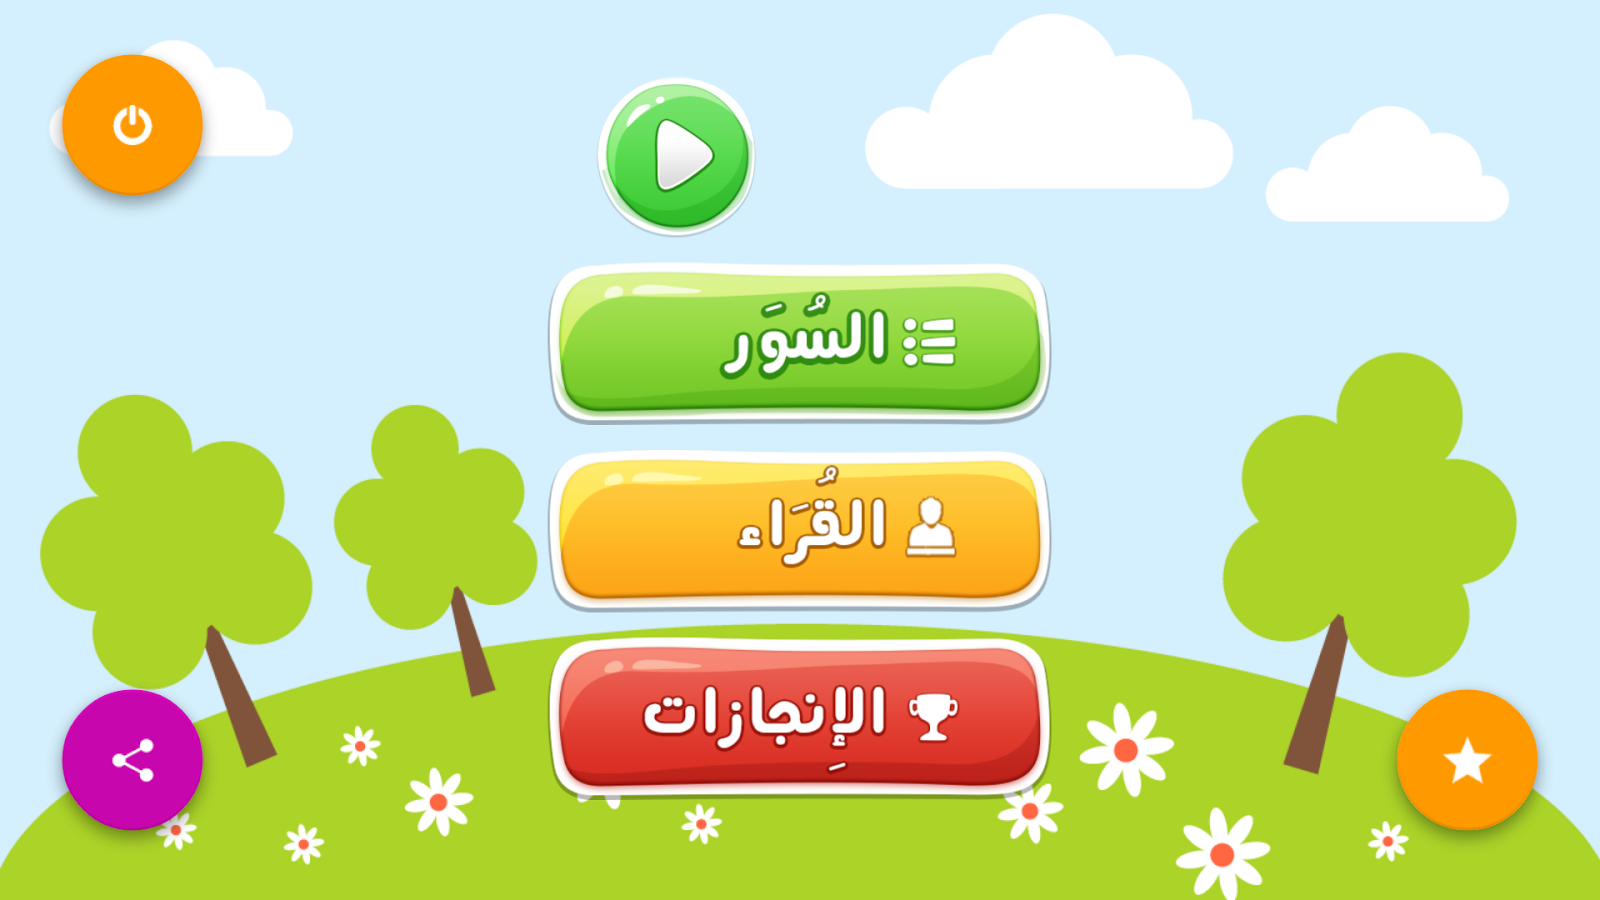 memorize Learn Quran for kids 9 2 APK Download - Android